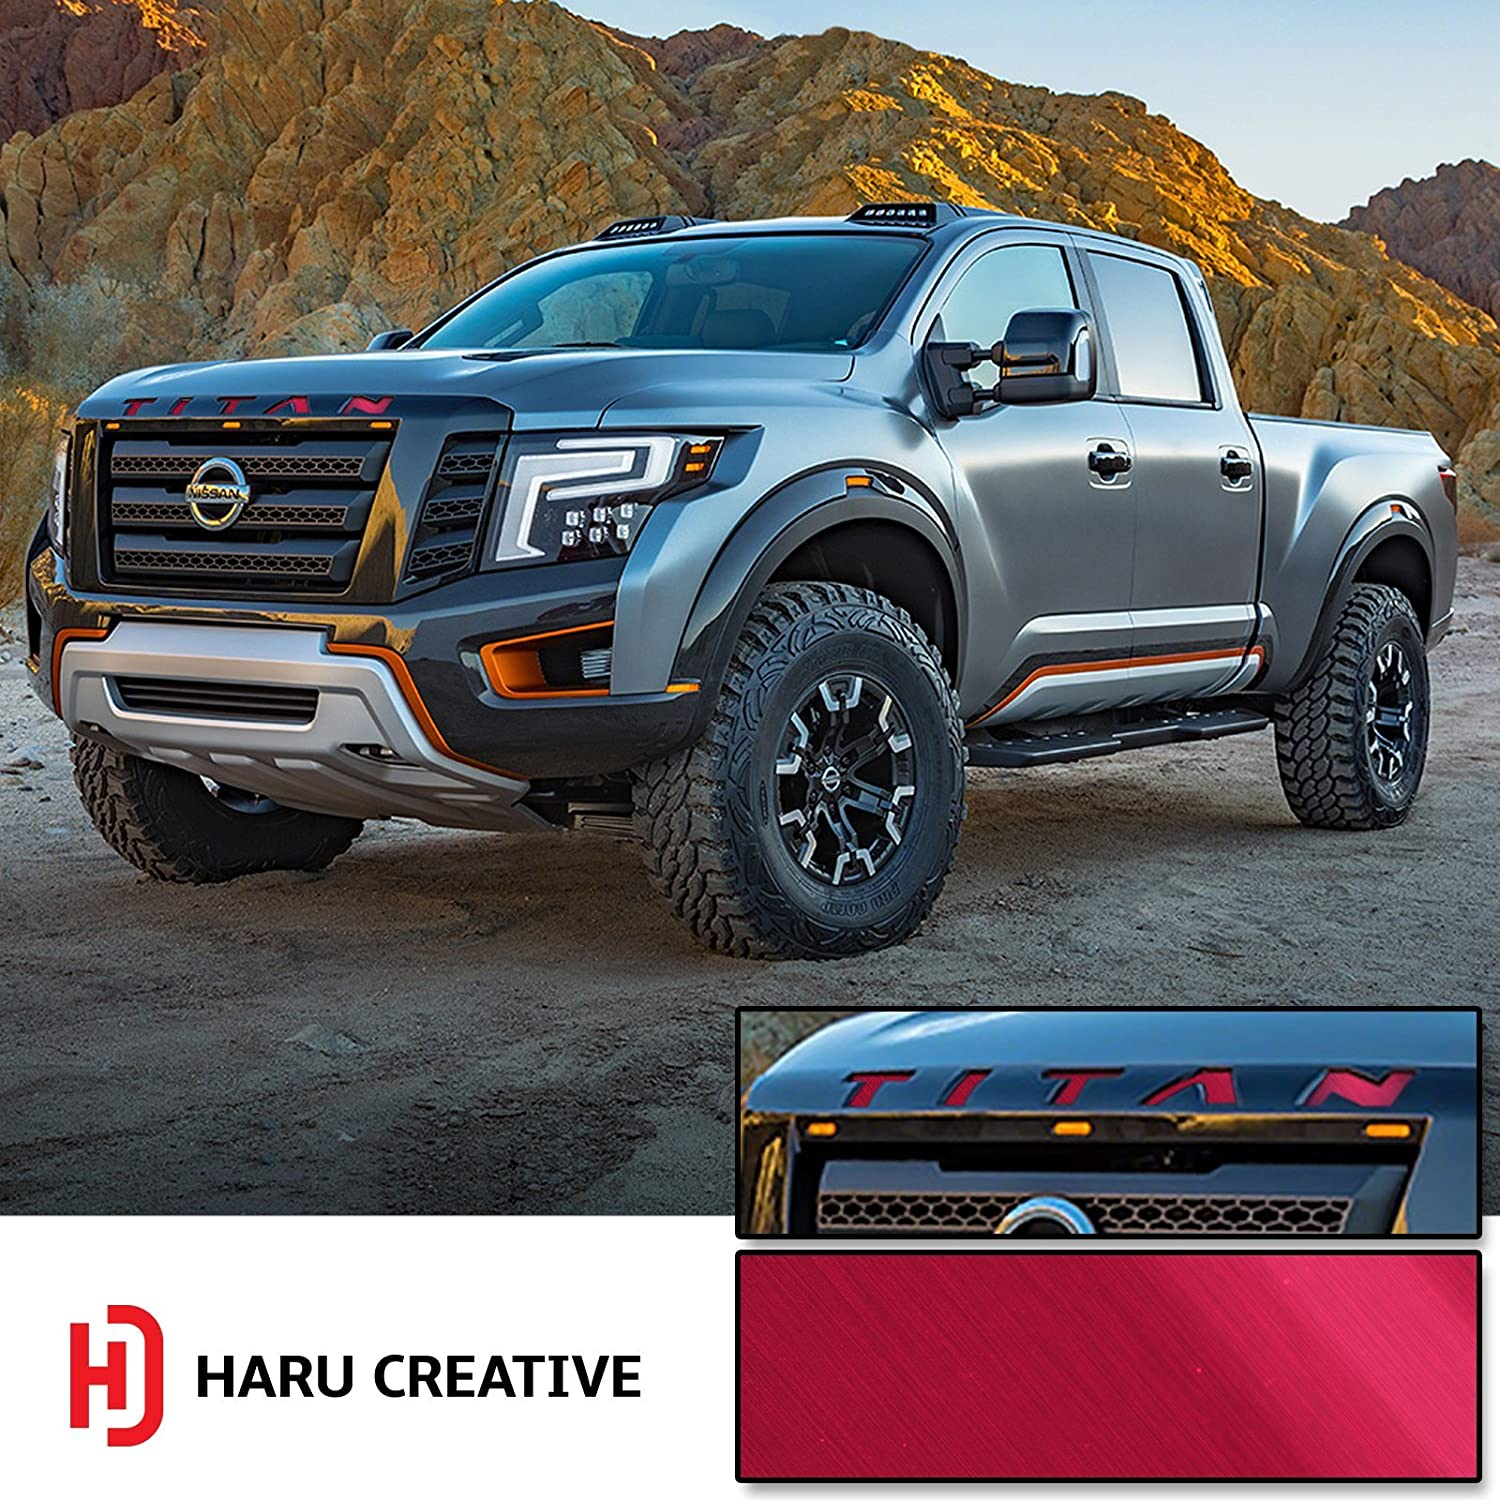 Metallic Brushed Aluminum Gunmetal Loyo Front Hood Grille Emblem Letter Insert Overlay Vinyl Decal Sticker Compatible with and Fits Nissan Titan XD 2016 2017 2018 Haru Creative